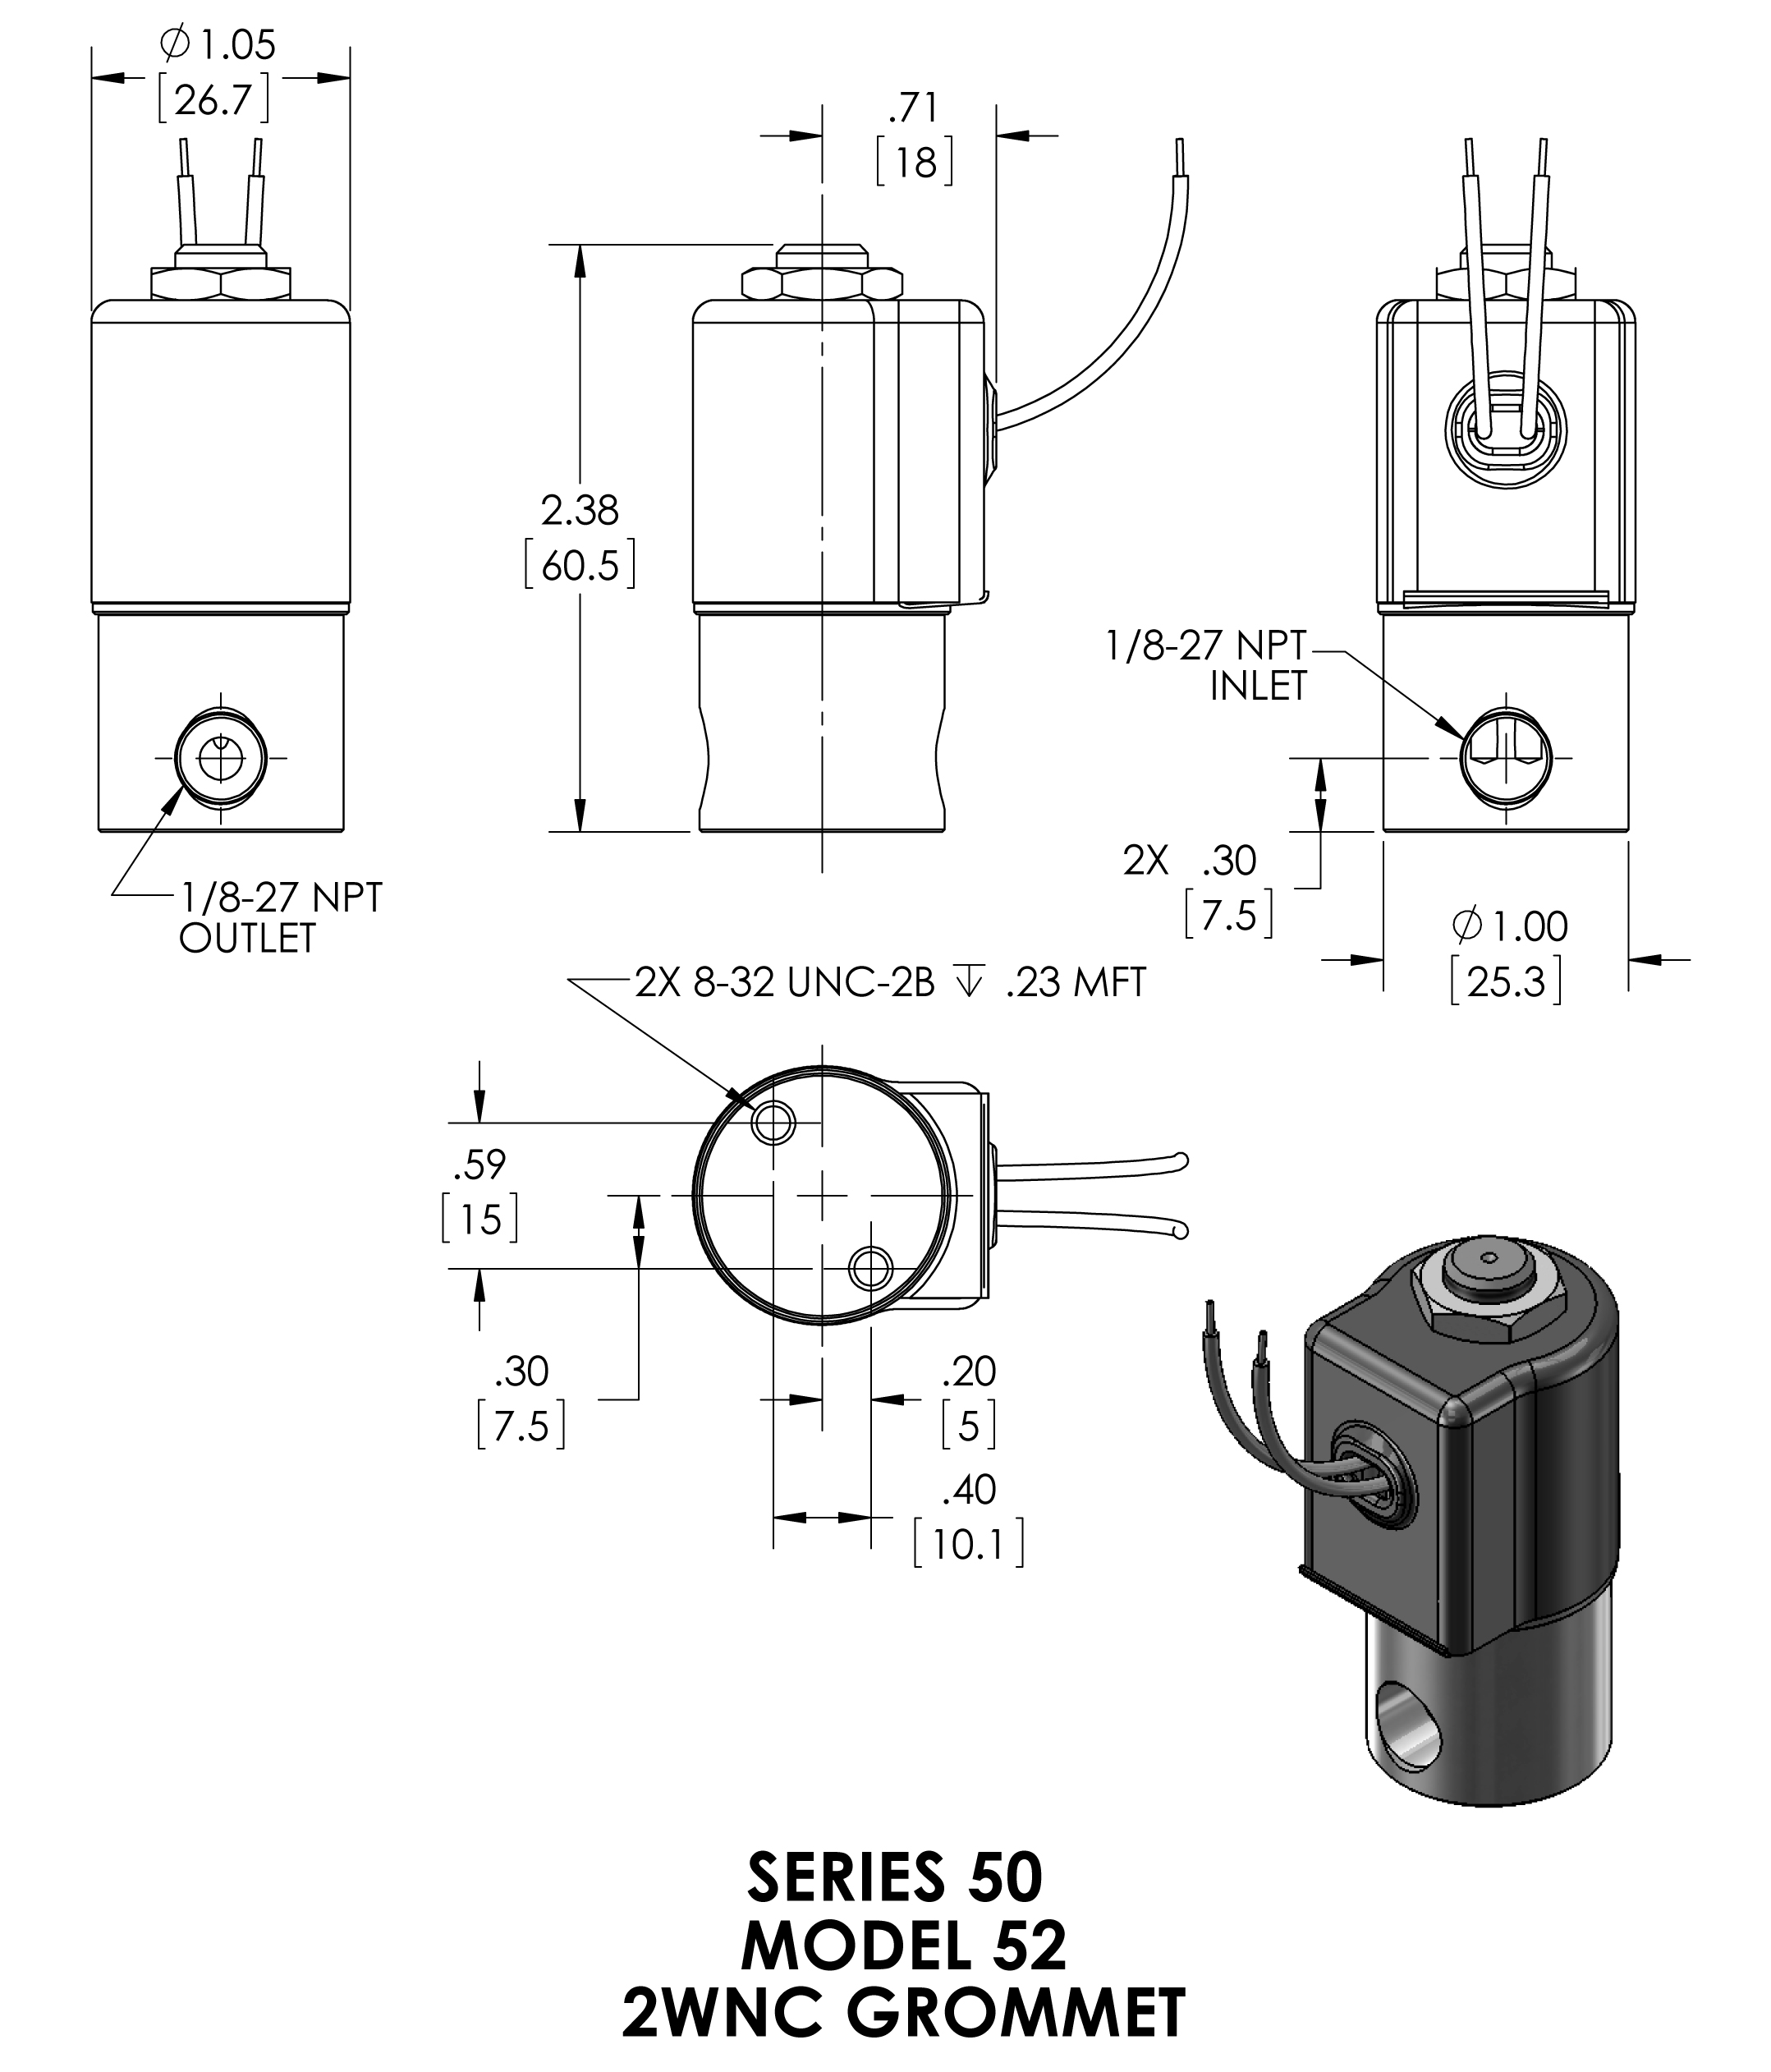 52v8dgb Peter Paul 2 Way Normally Closed Solenoid Valve 5